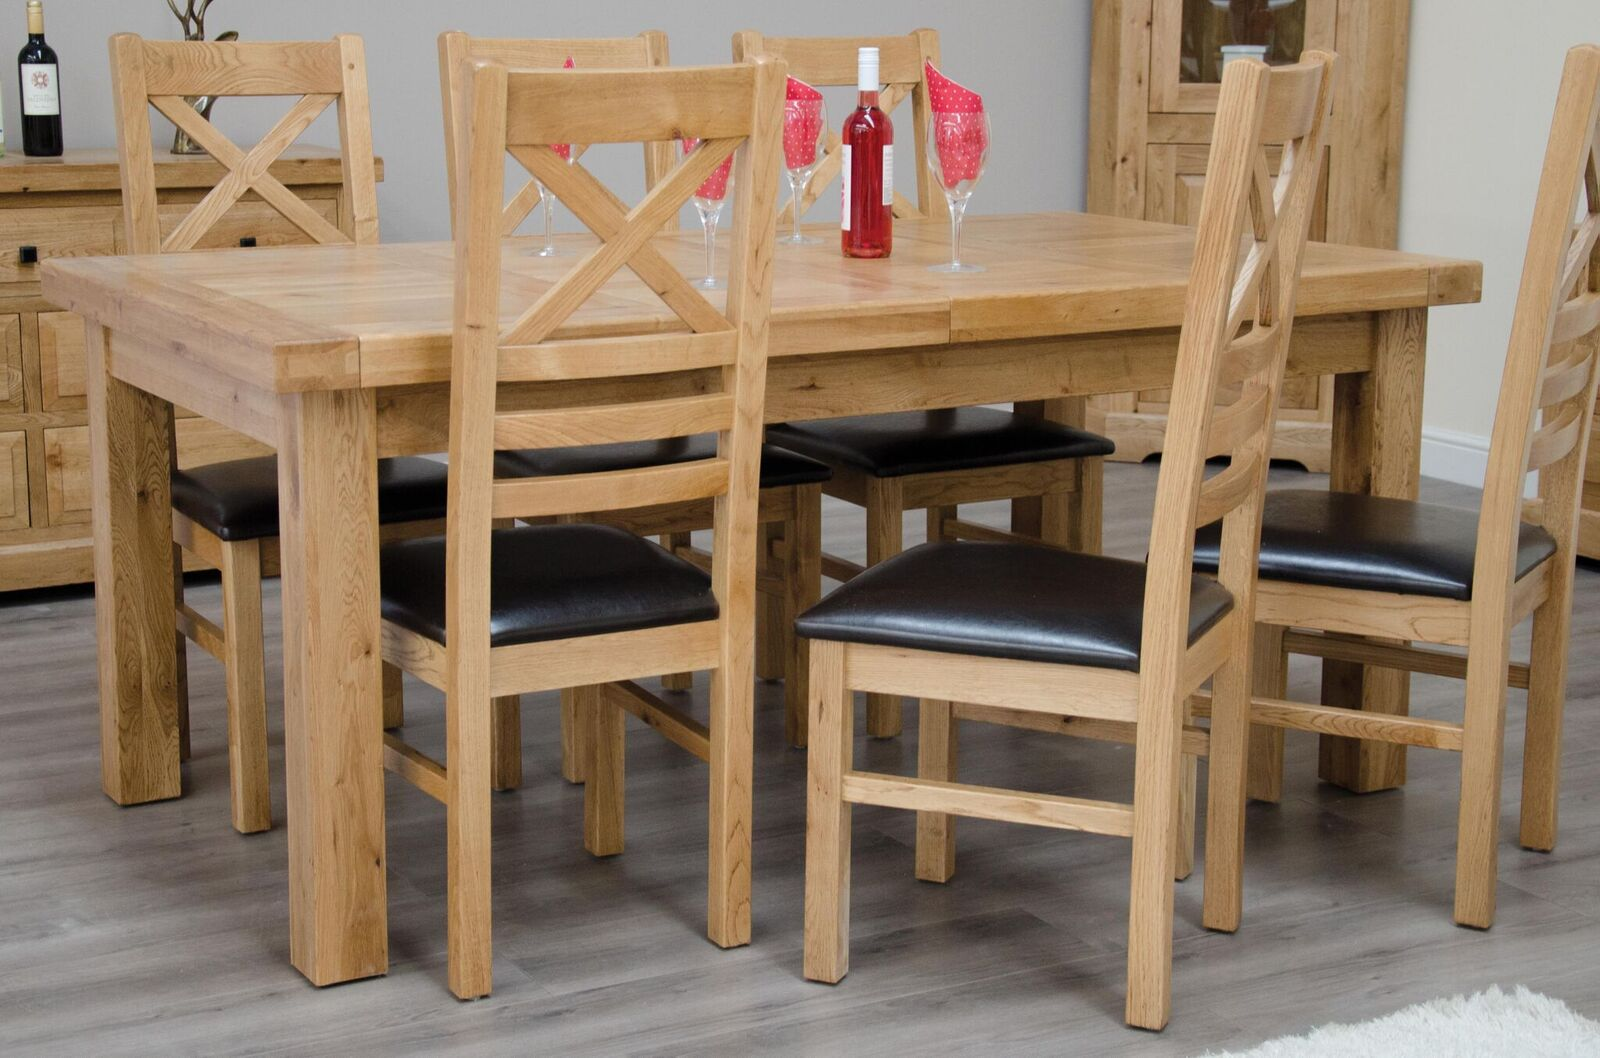 Deluxe Oak Dining Set - 180cm-260cm Rectangular Extending with 6 Chairs